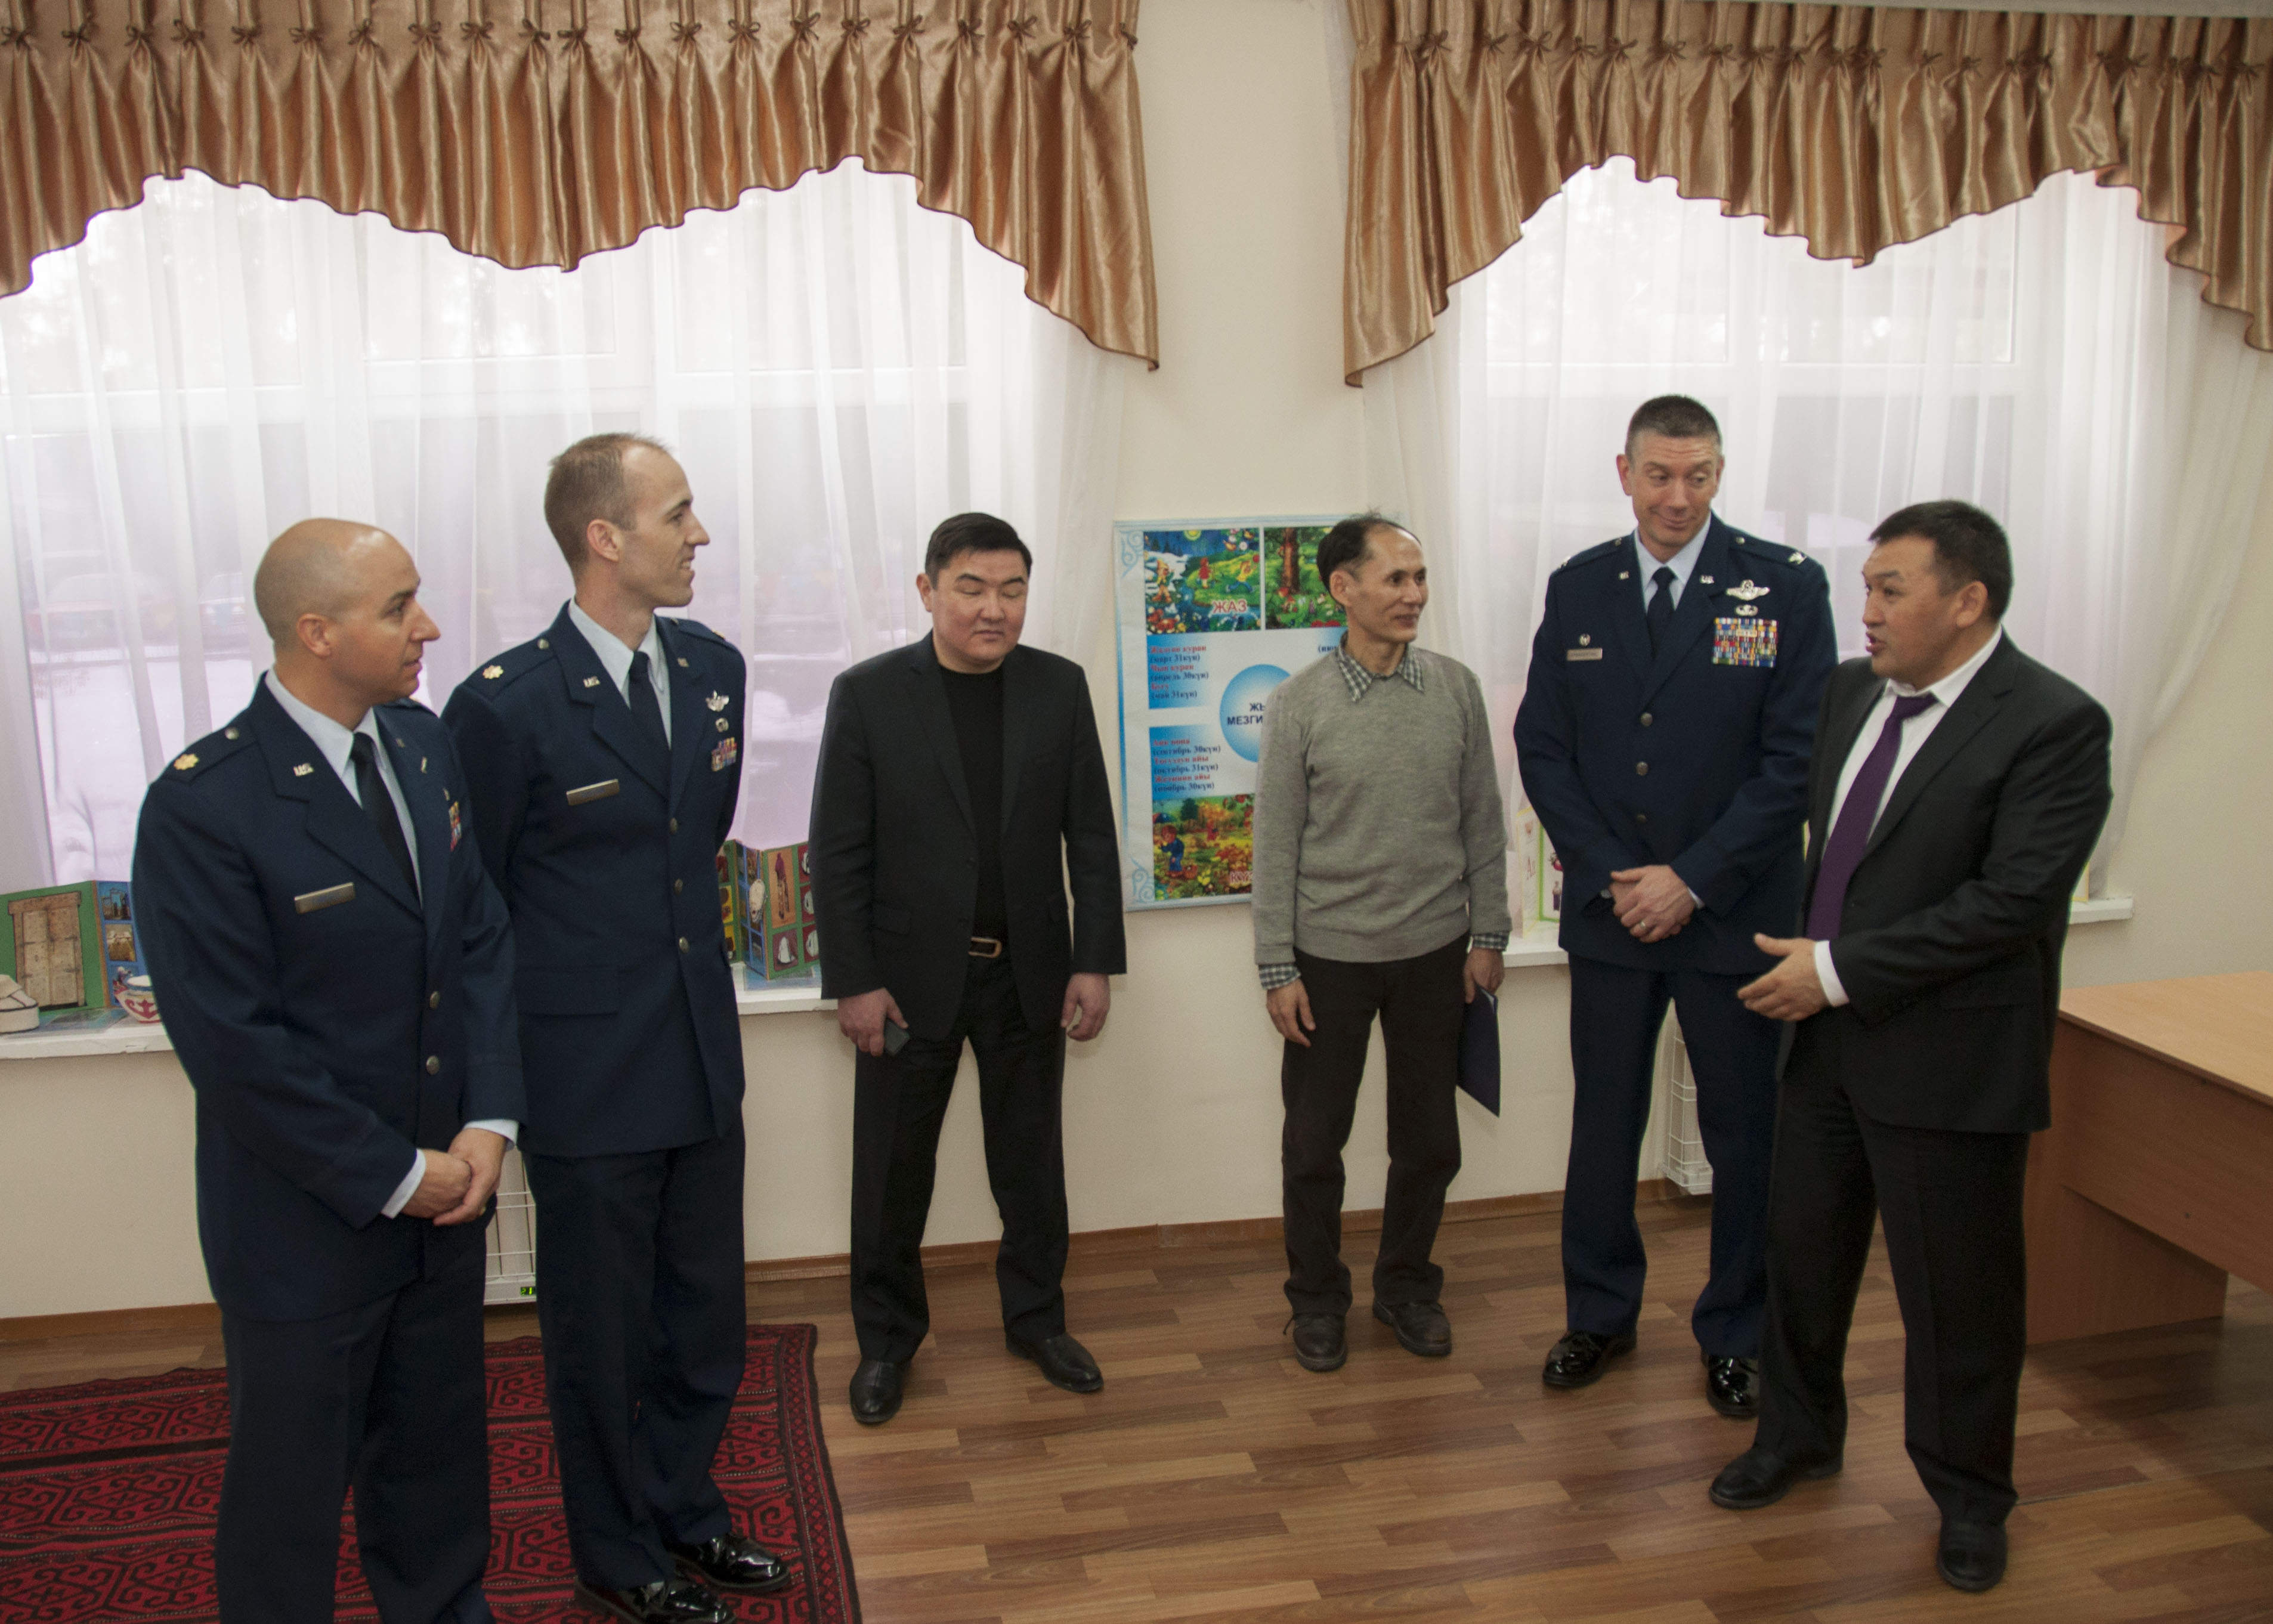 the Kyrgyz Republic government on a humanitarian assistance project to renovate the school building with new windows, floors and lighting in each classroom